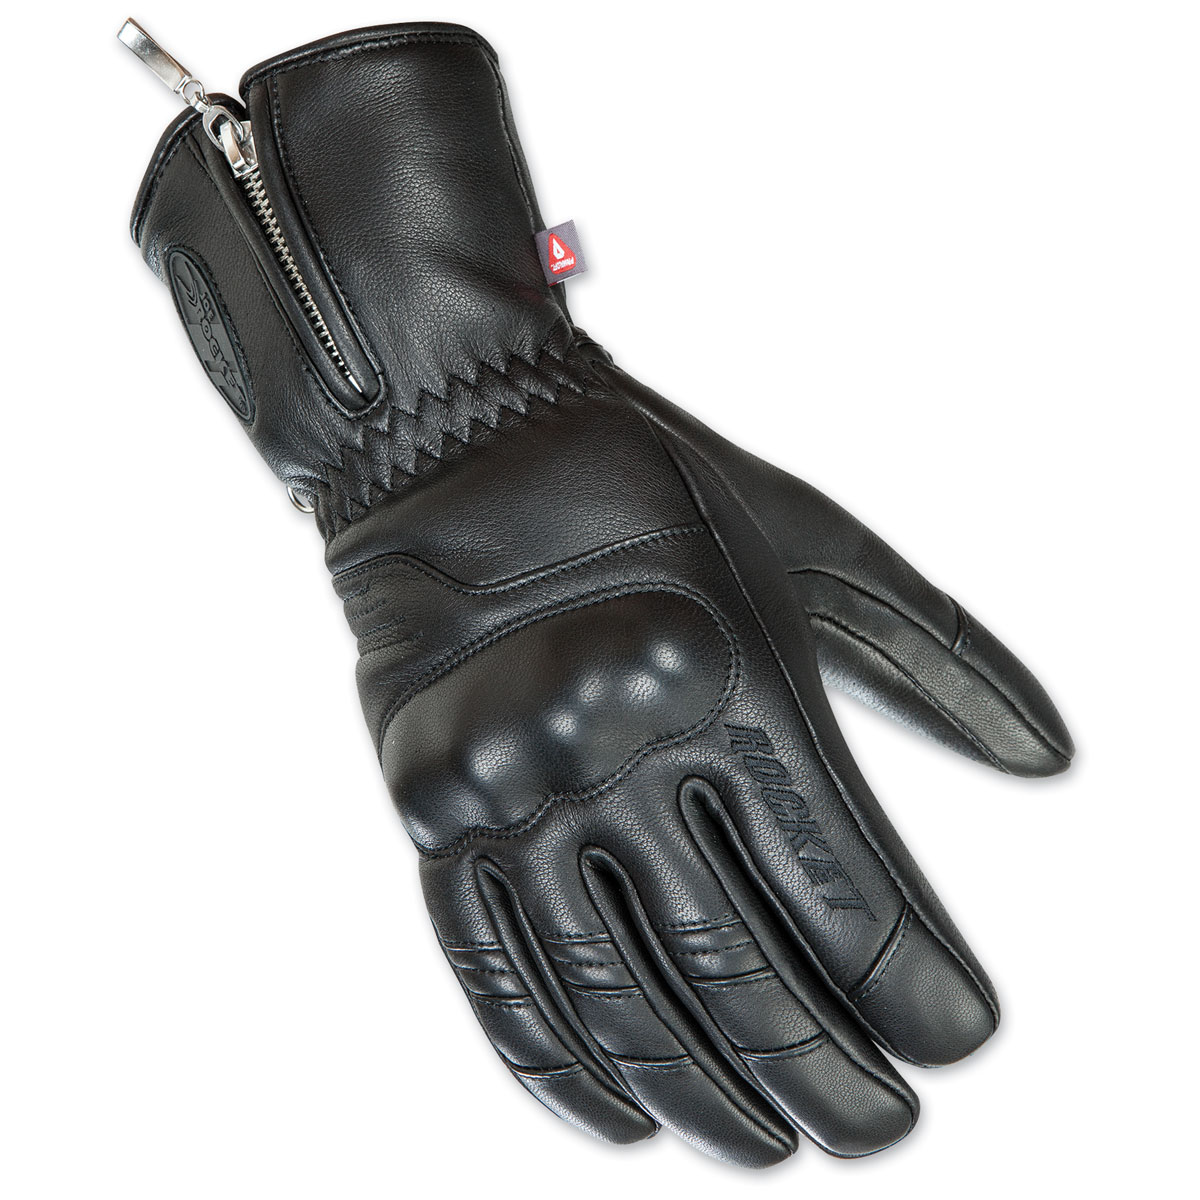 Joe Rocket Men's Outrigger Black Leather Gloves